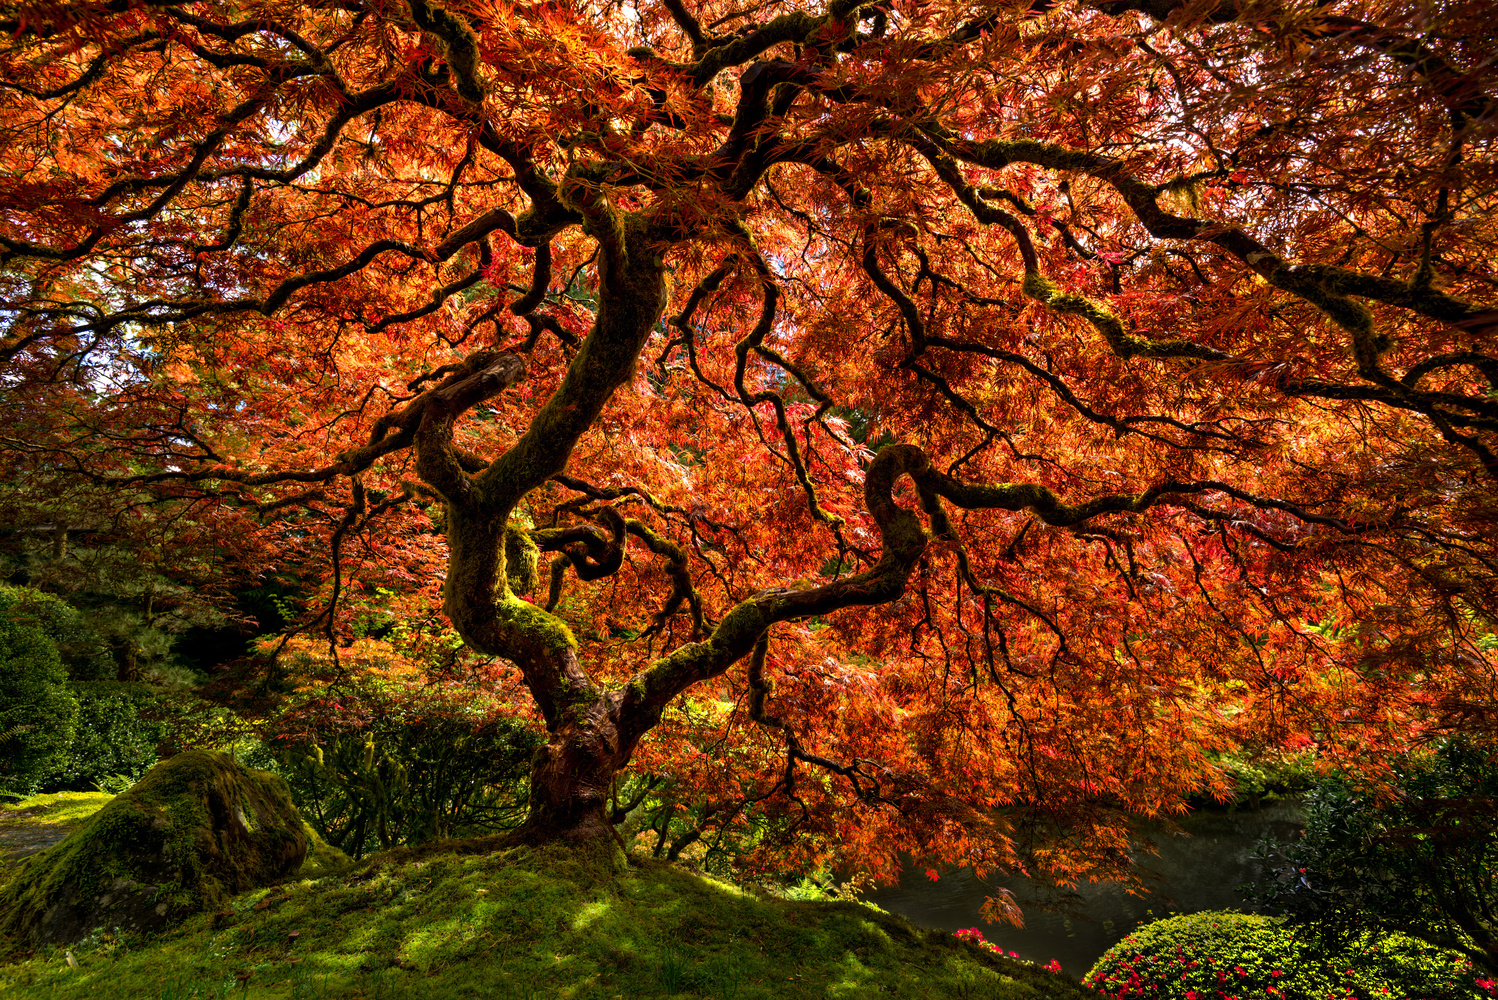 The Tranquil Maple by Chris Ward